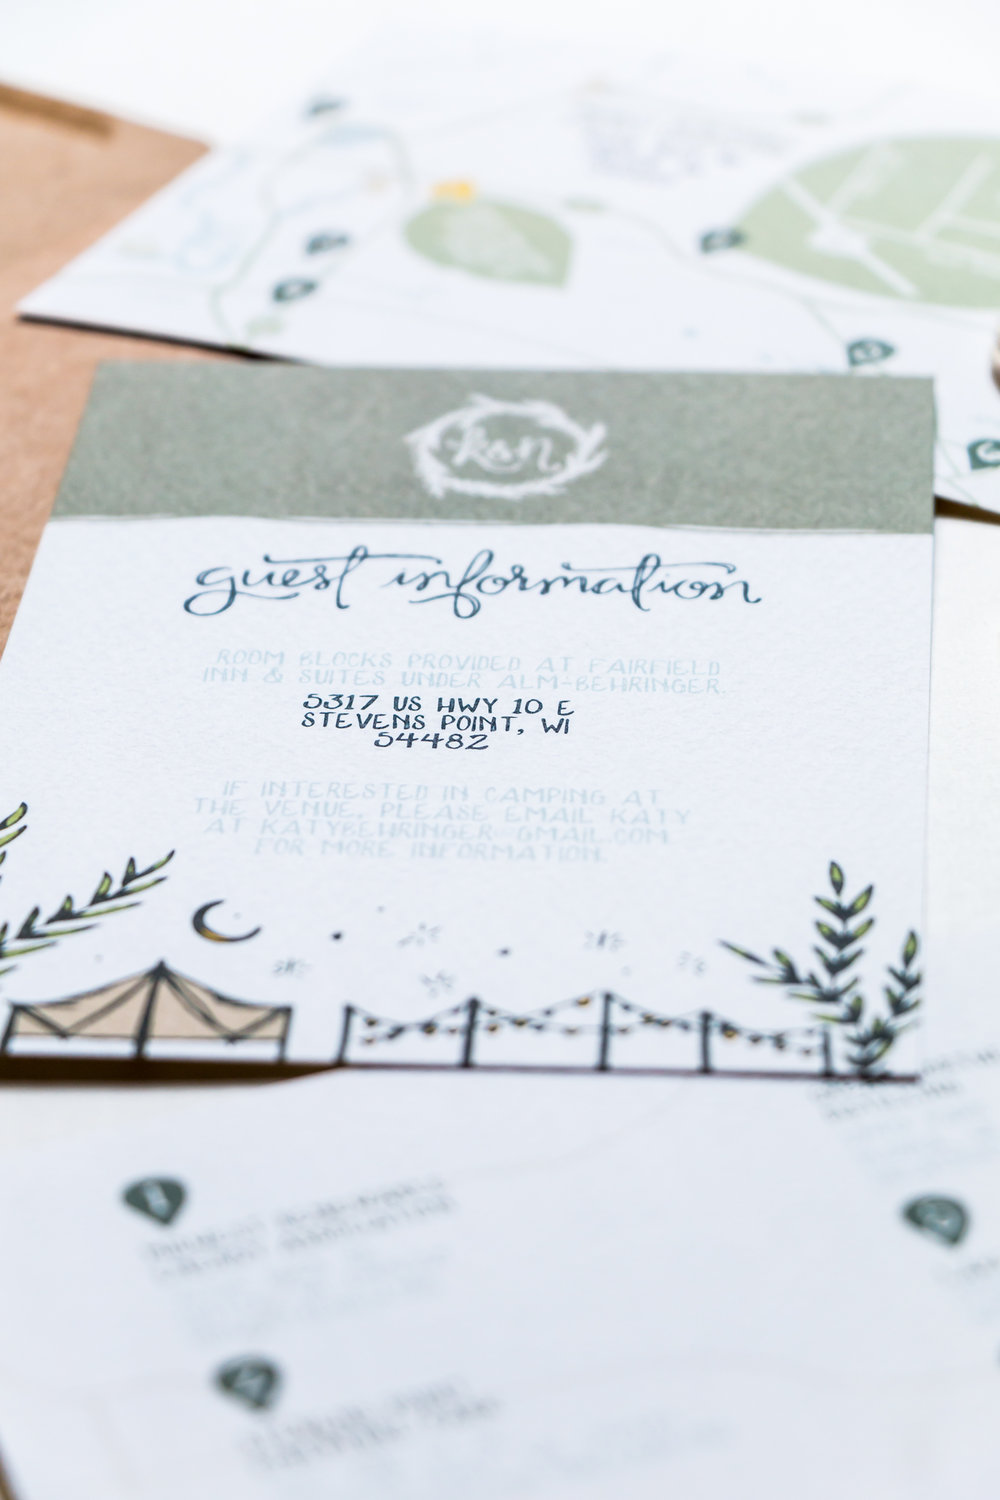 Katy & Nate Wedding Stationery | Britt Fabello